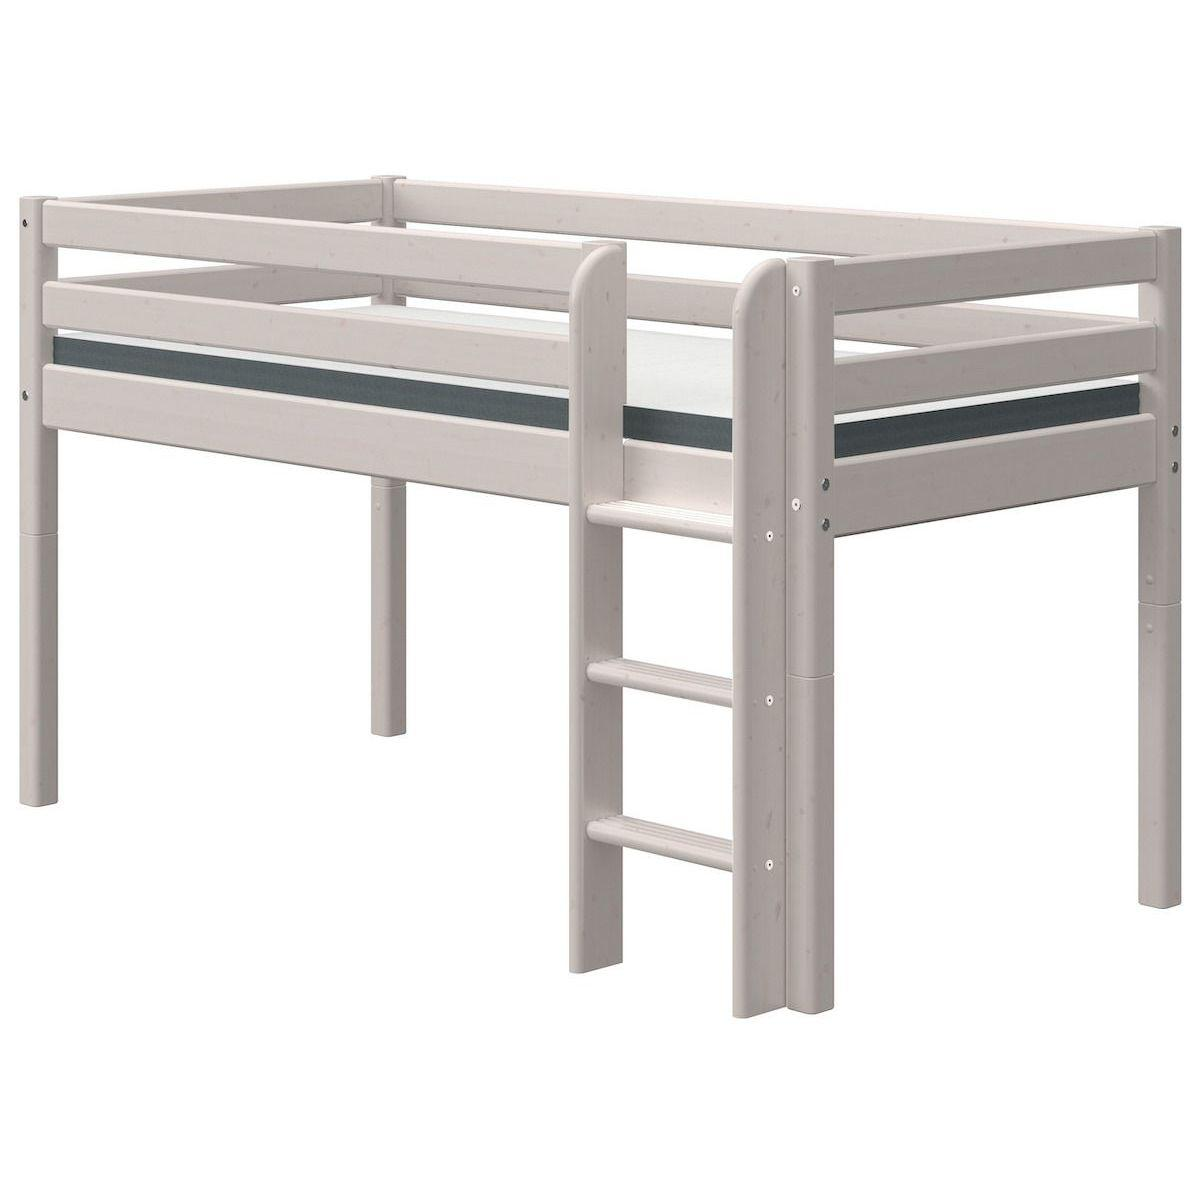 Cama media alta 90x190cm escalera recta CLASSIC Flexa grey washed